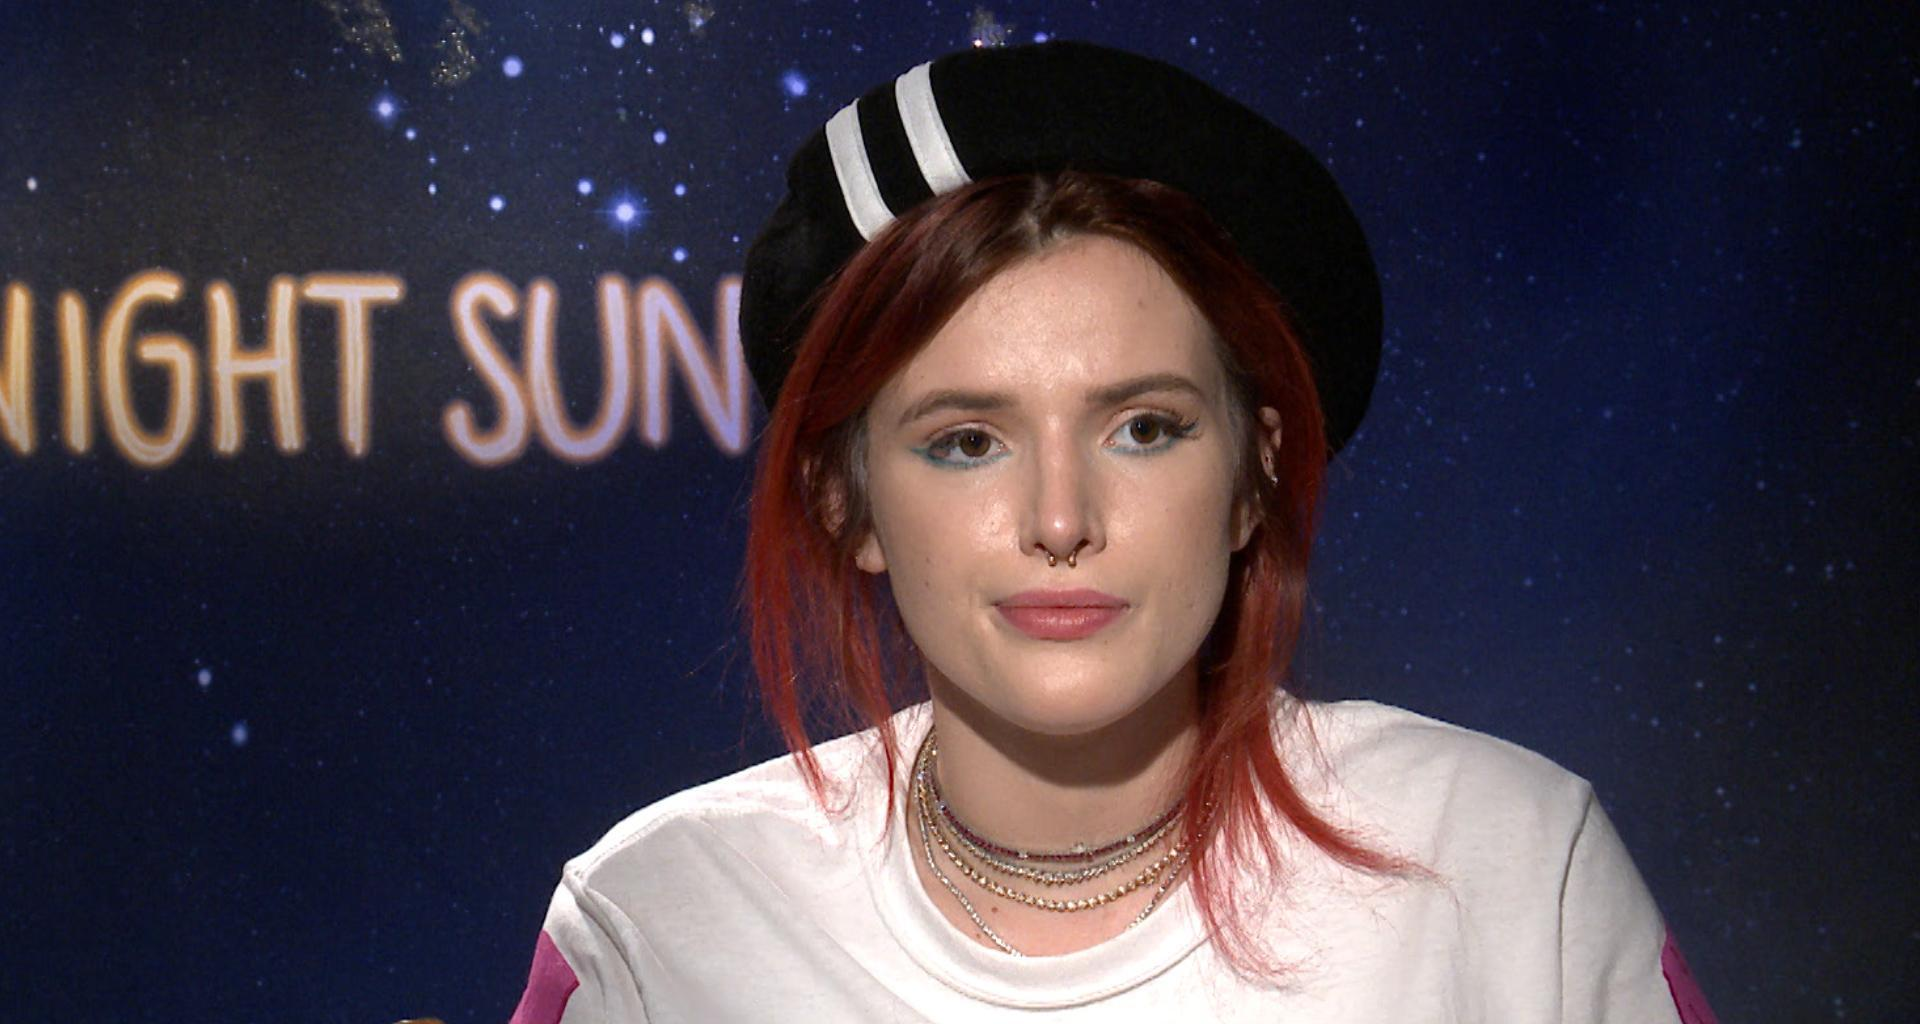 Bella Thorne Won The Vision Award From Pornhub For Her New Film Venture